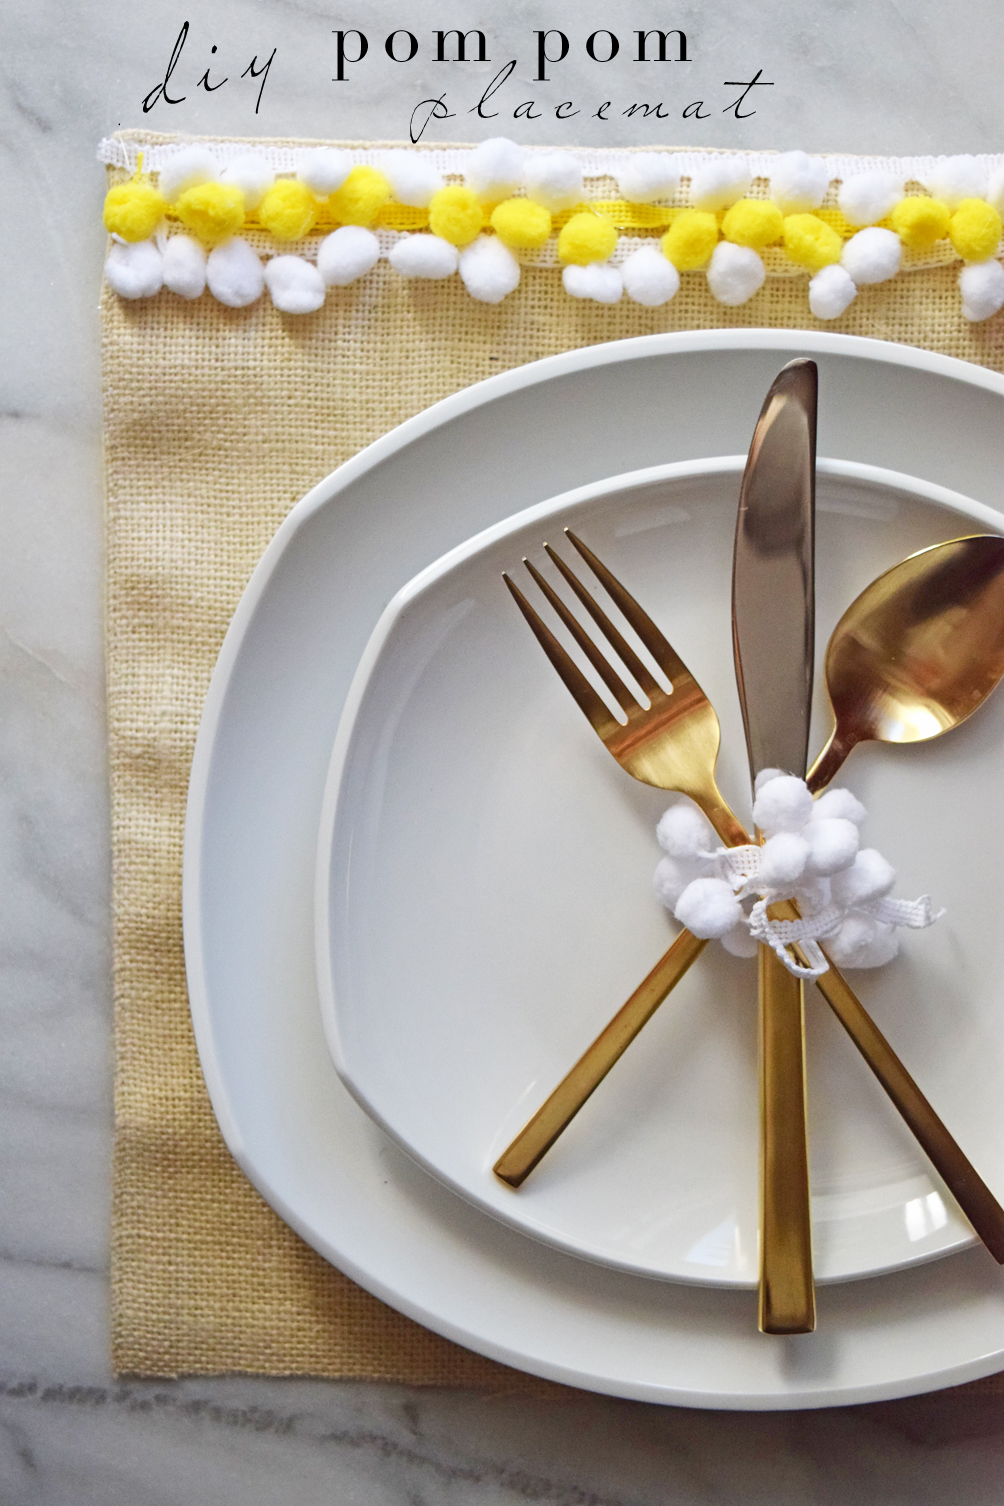 DIY pom pom placemat tutorial